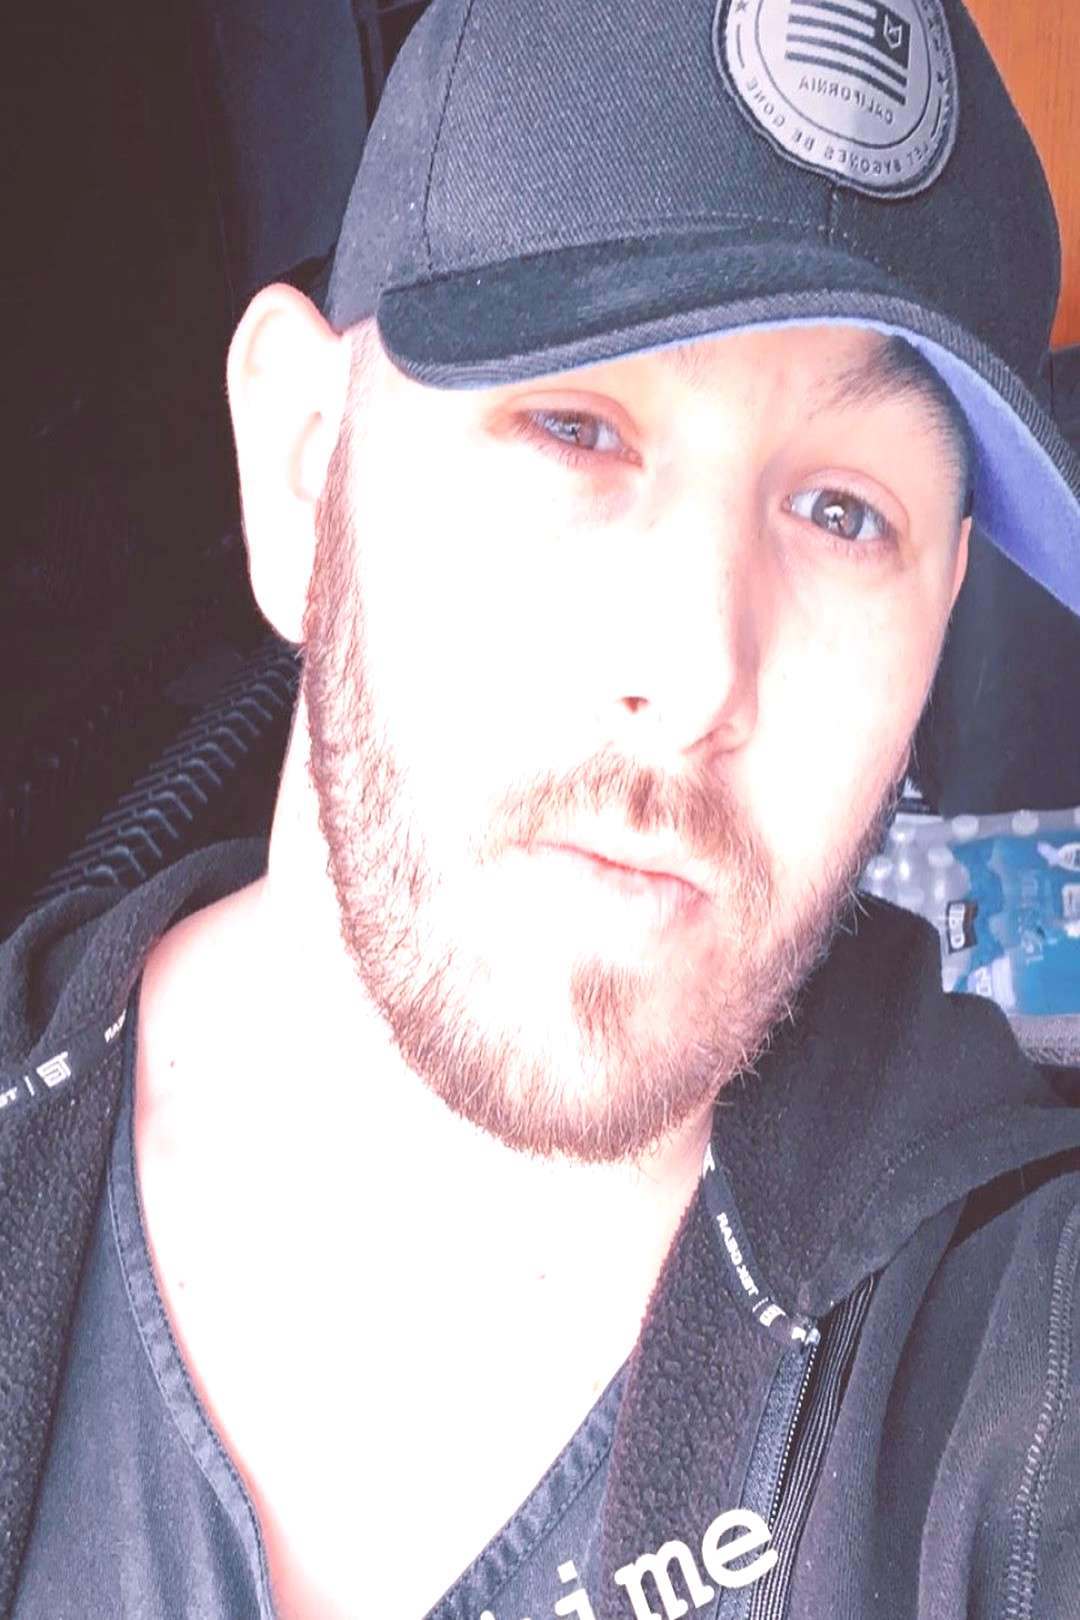 Reese on June 07 2020 1 person beard selfie and closeup